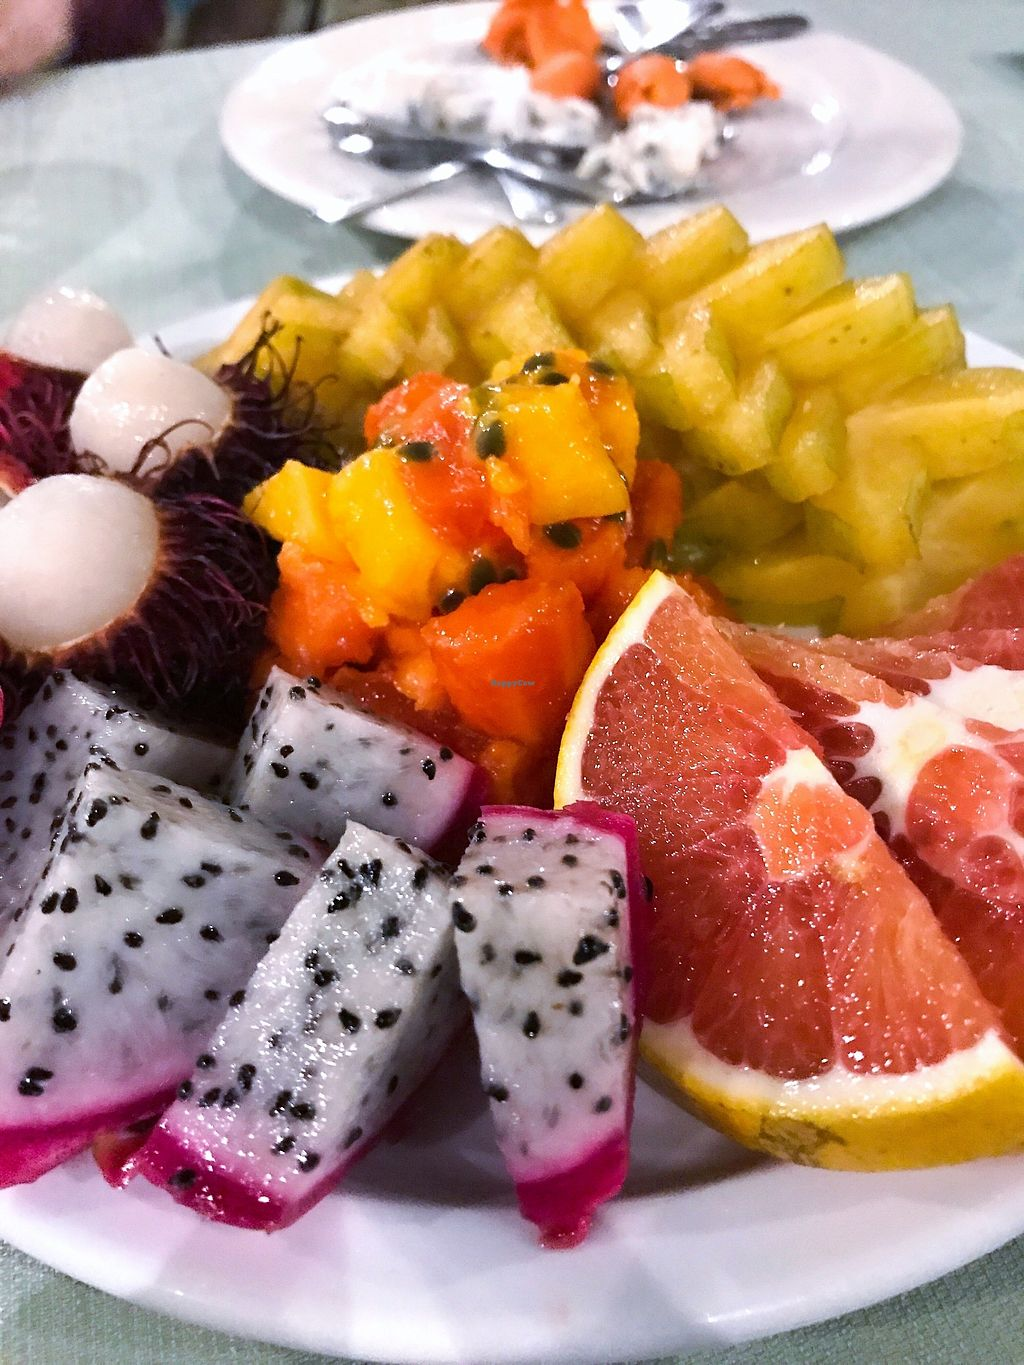 """Photo of OurPlace  by <a href=""""/members/profile/AllisonJ"""">AllisonJ</a> <br/>The fruit plate is always perfection  <br/> November 6, 2017  - <a href='/contact/abuse/image/99134/322682'>Report</a>"""